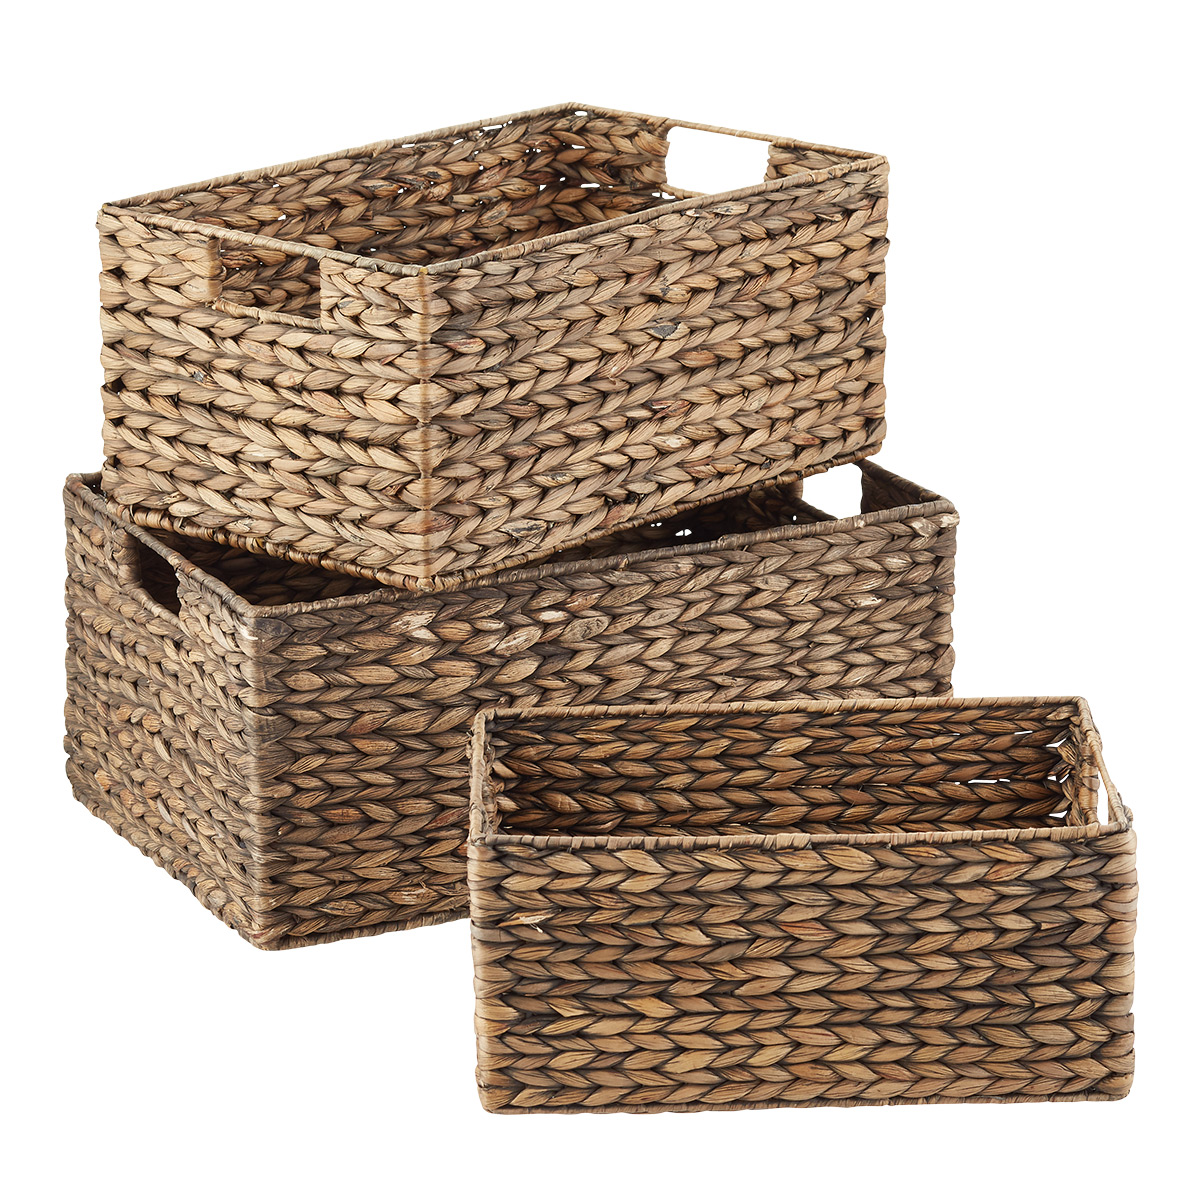 Mocha Water Hyacinth Bins Set of 3